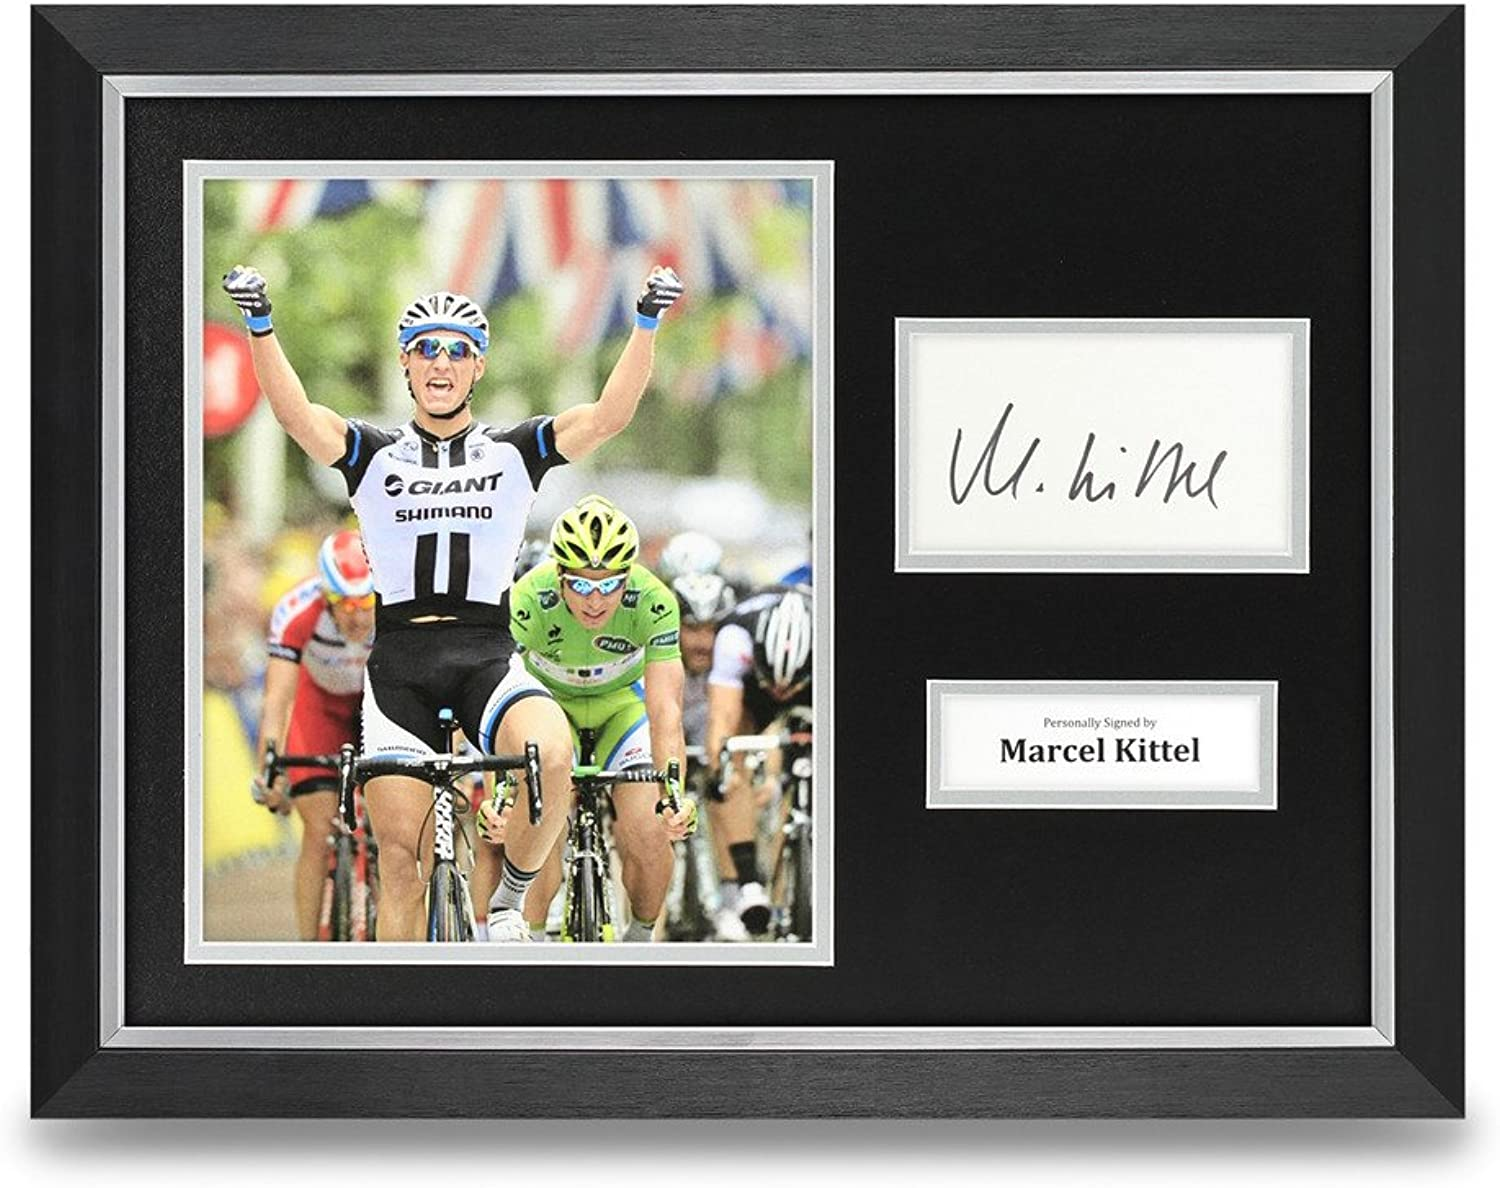 Marcel Kittel Signed Photo Framed 16x12 Cyclist Autograph Memorabilia COA